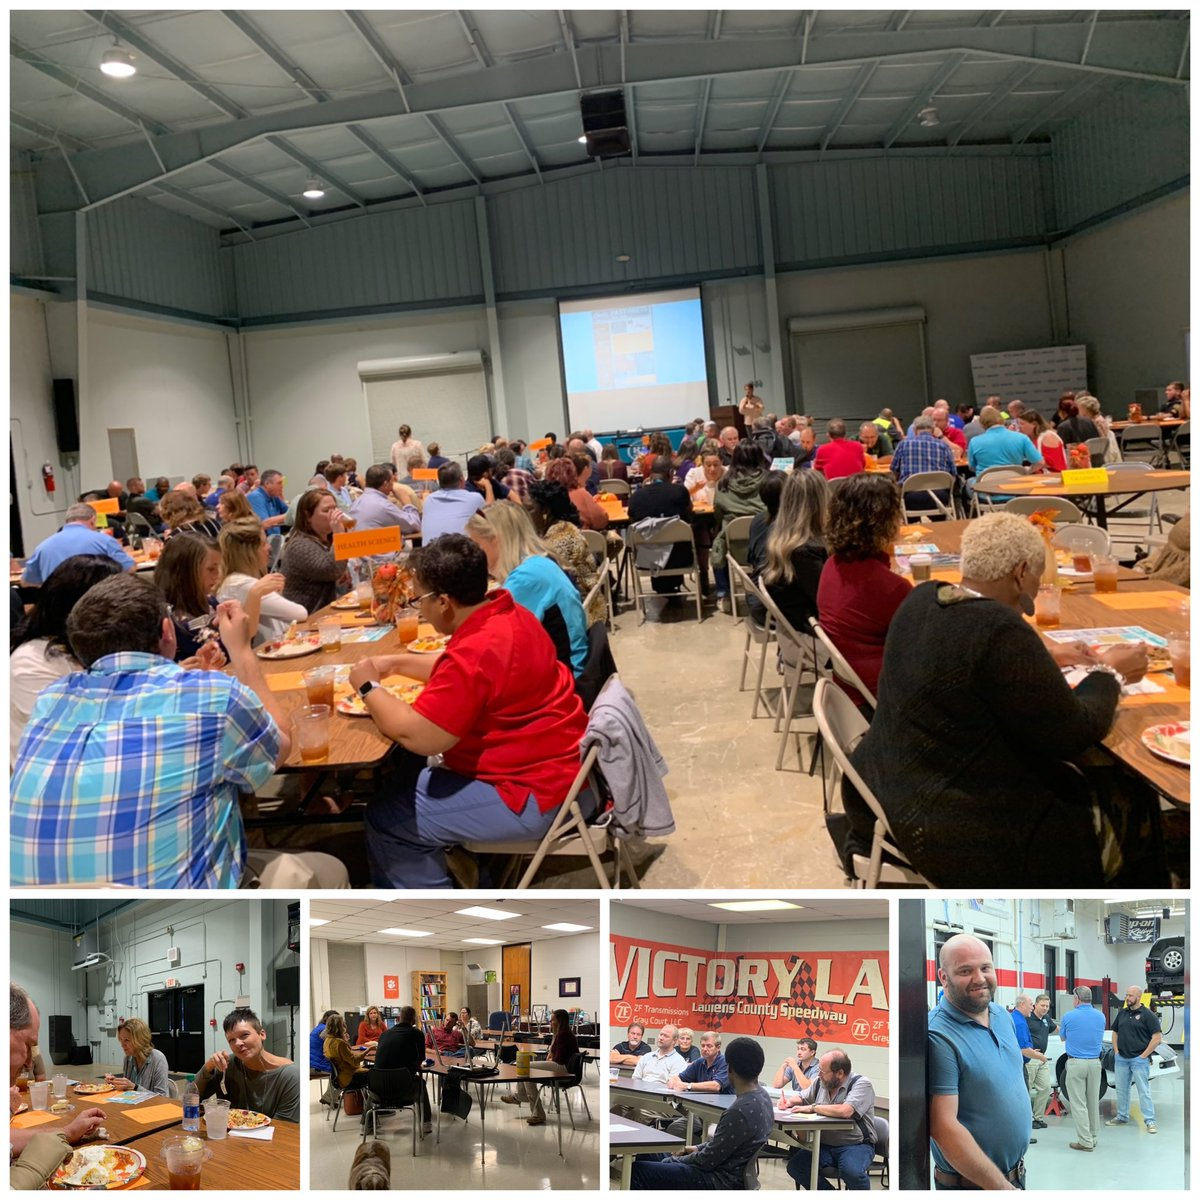 Thank you to everyone that attended our Advisory meeting on 10/08/2019.  We had a great turn out!!! We are thankful for our supporters!#FutureFocused#CTEWorks <br>http://pic.twitter.com/p4PnRlTqZH